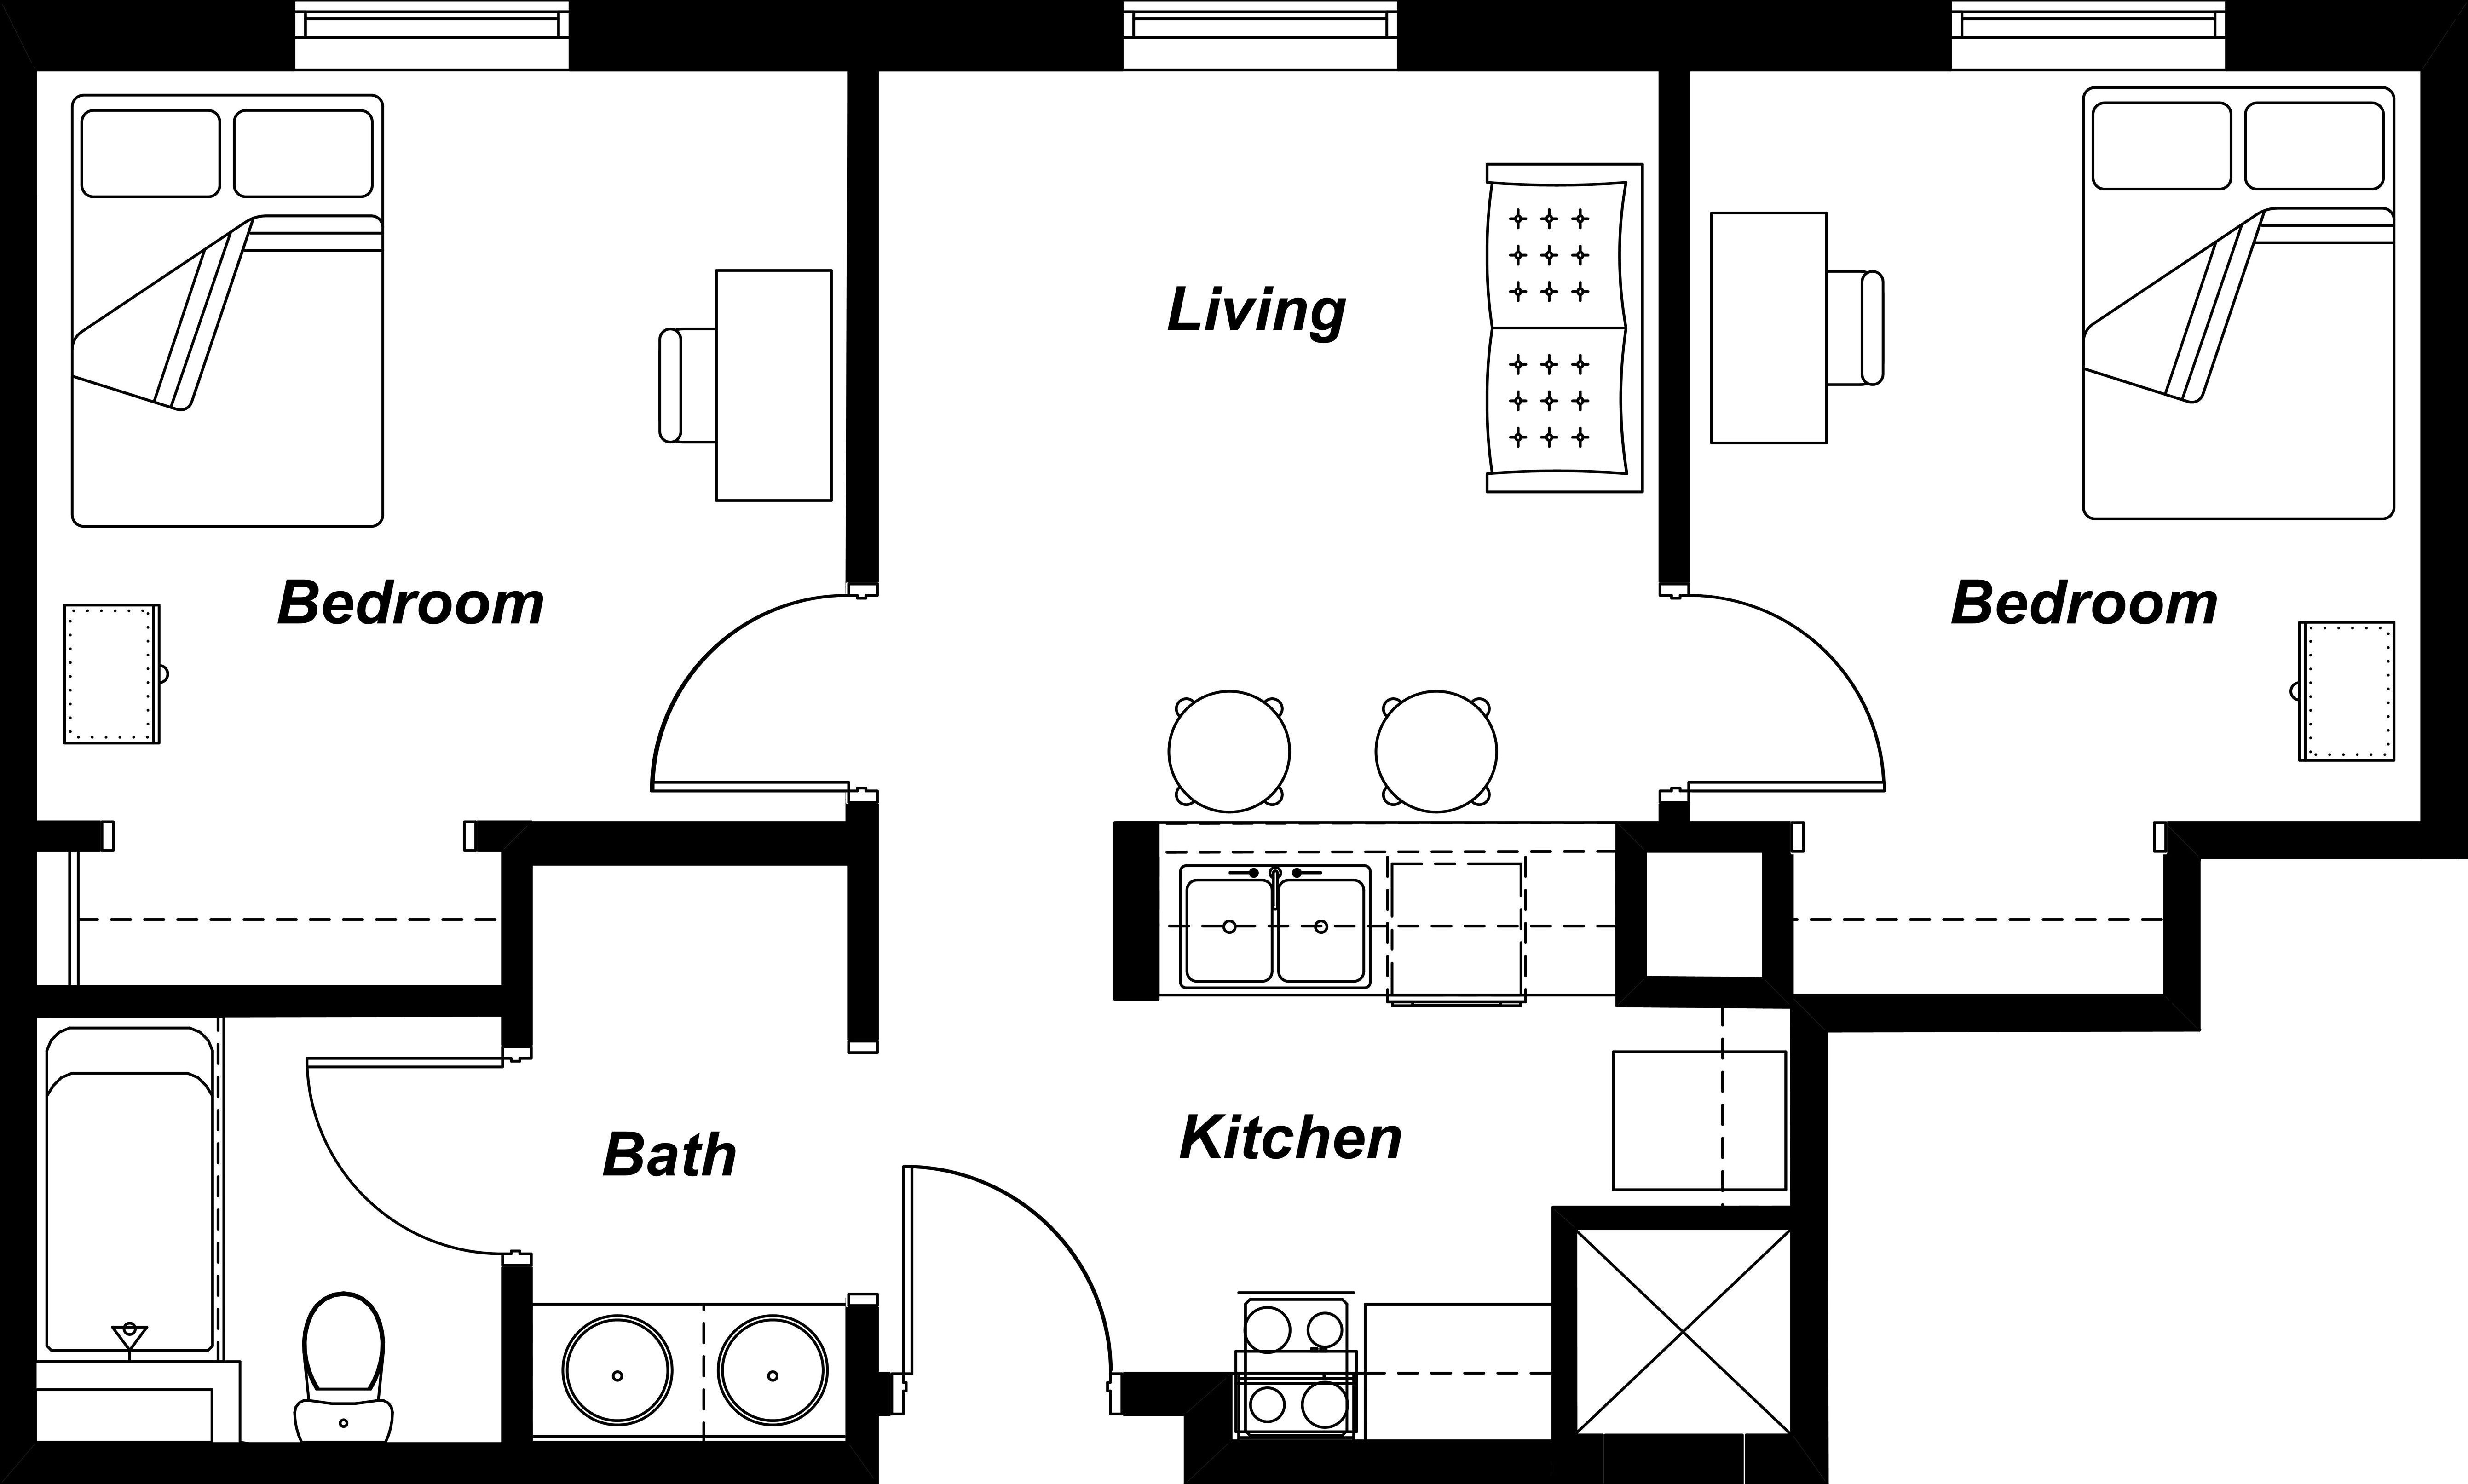 Residential Floor Plans Perfect Home Design Ideas With Floor Plan Design Home Design Floor Plans Affordable Floor Plans